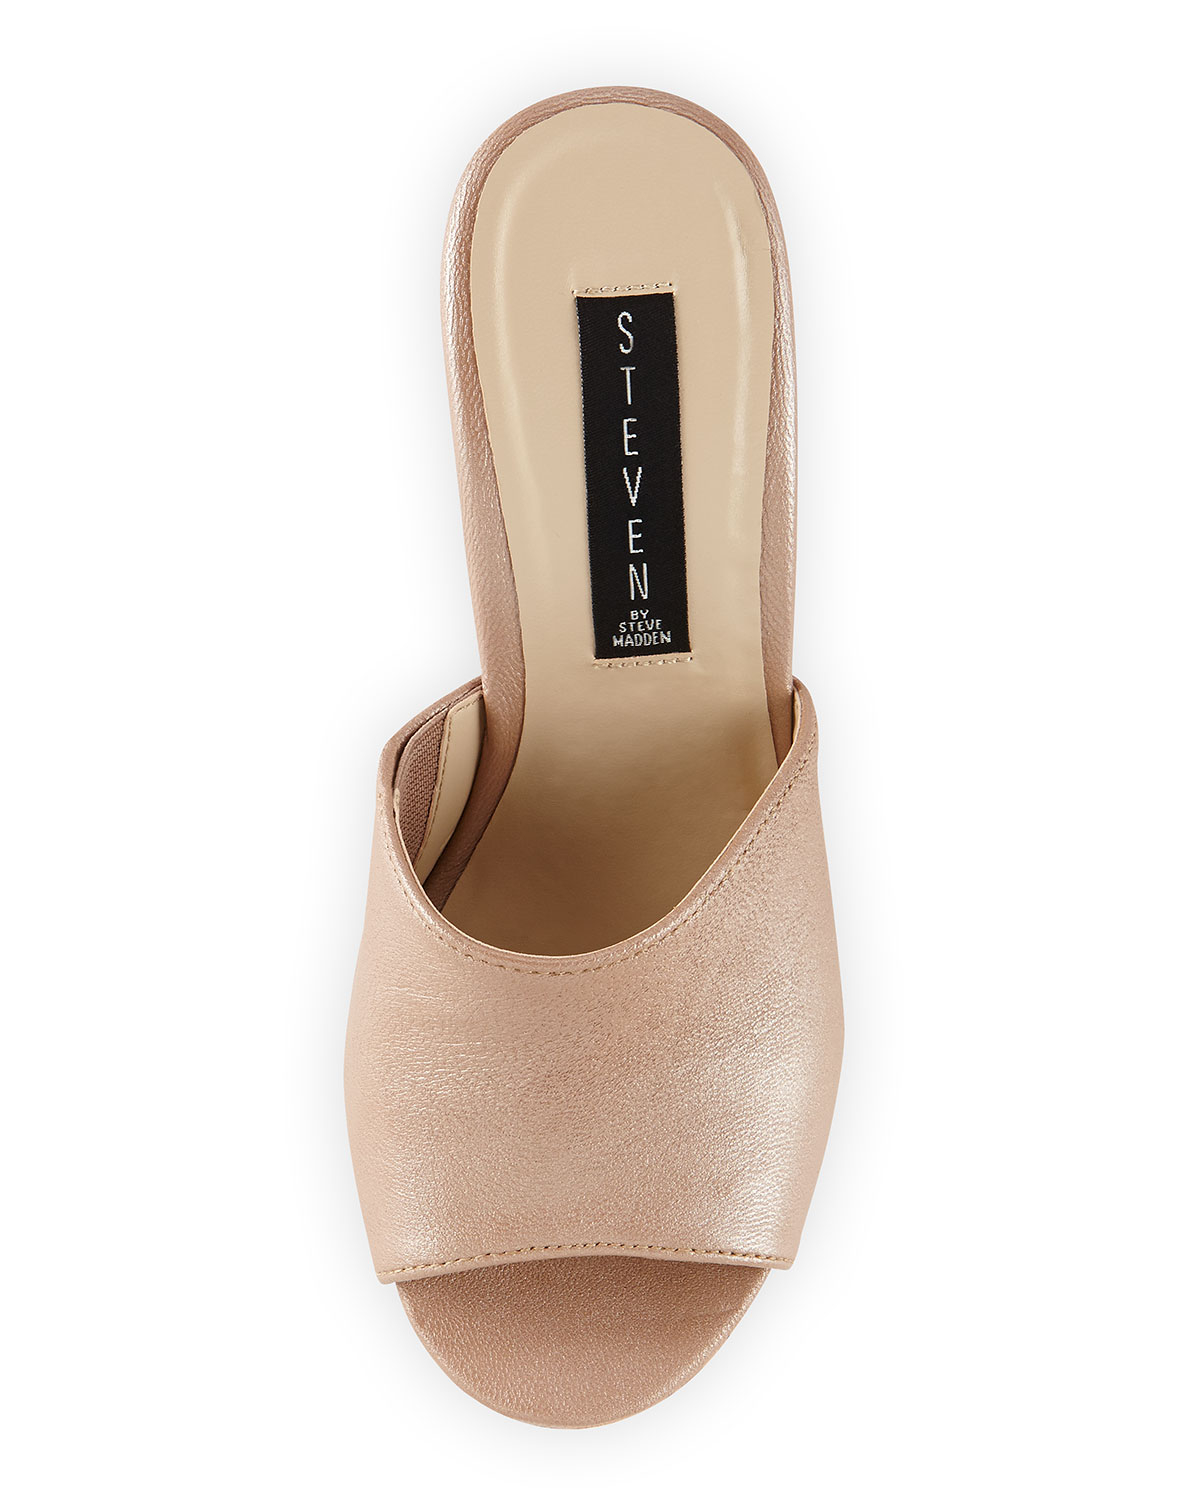 a2bff76ffd4 Lyst - Steven by Steve Madden Farahh Cork Wedge Sandal Champagne 8 in  Natural